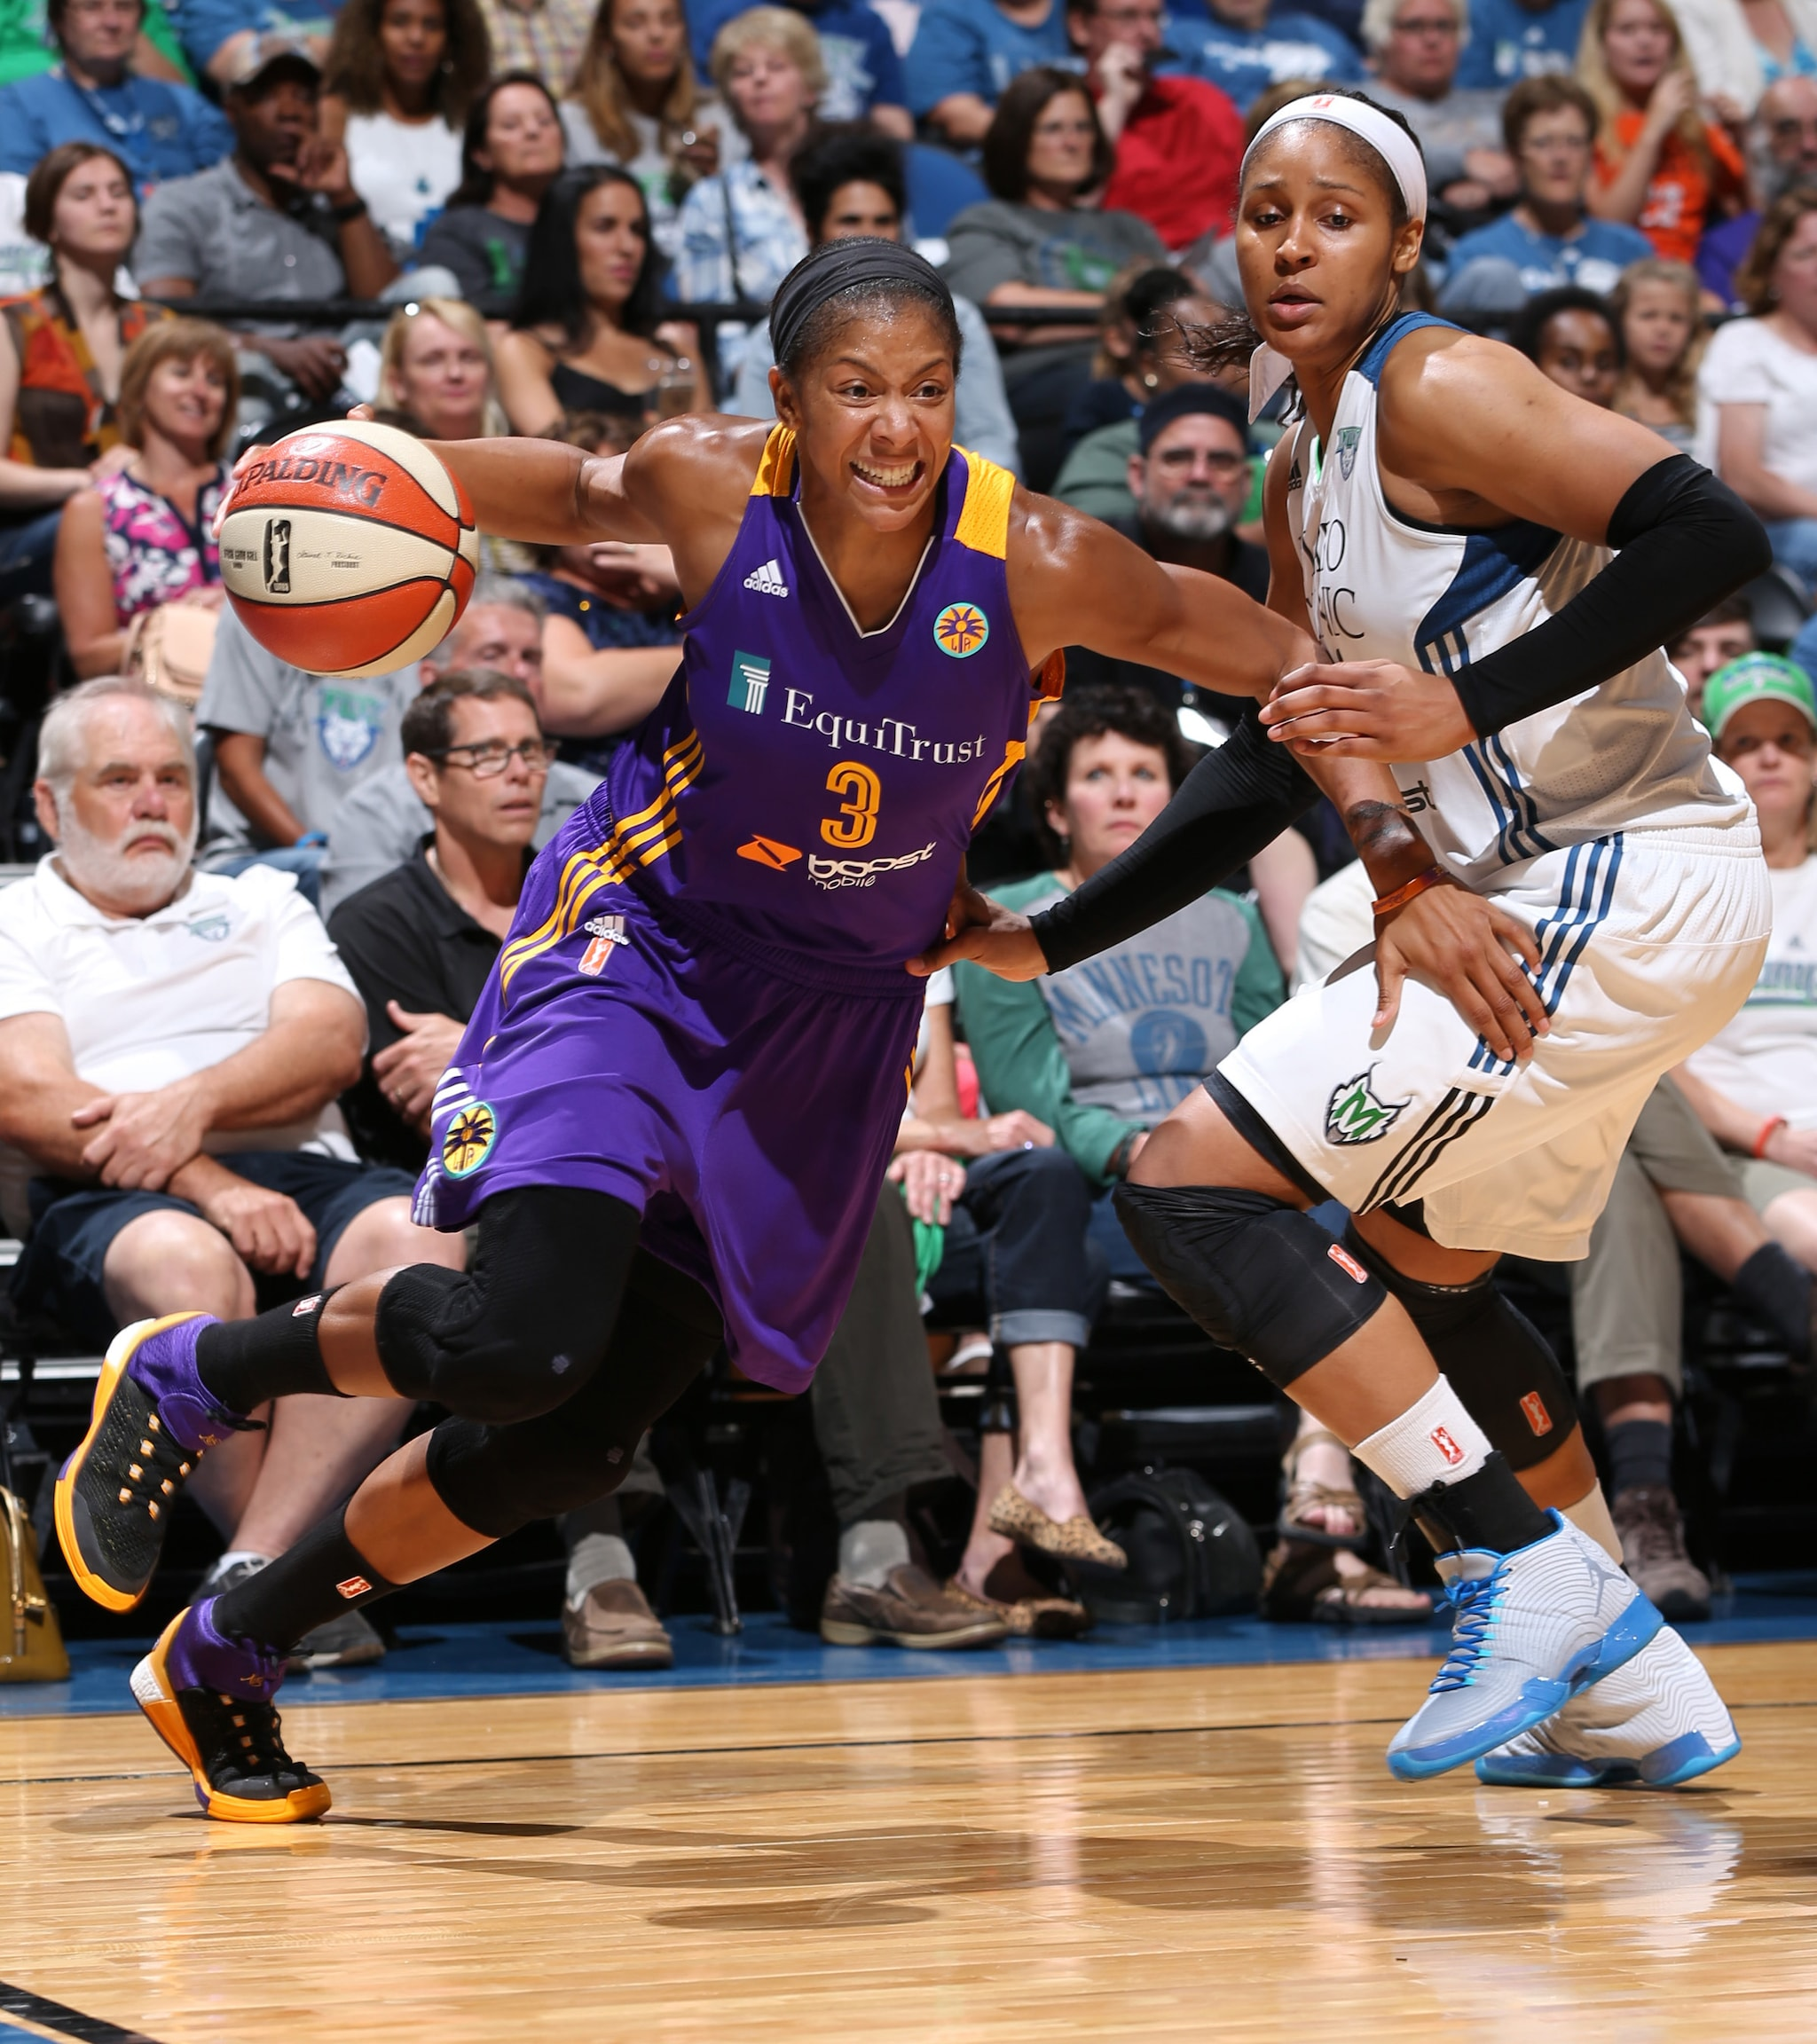 Sparks forward Candace Parker made her season deubt after sitting out the first half of the season to rest. Parker played well, finishing just shy of a triple-double: 12 points, seven rebounds and nine assists.